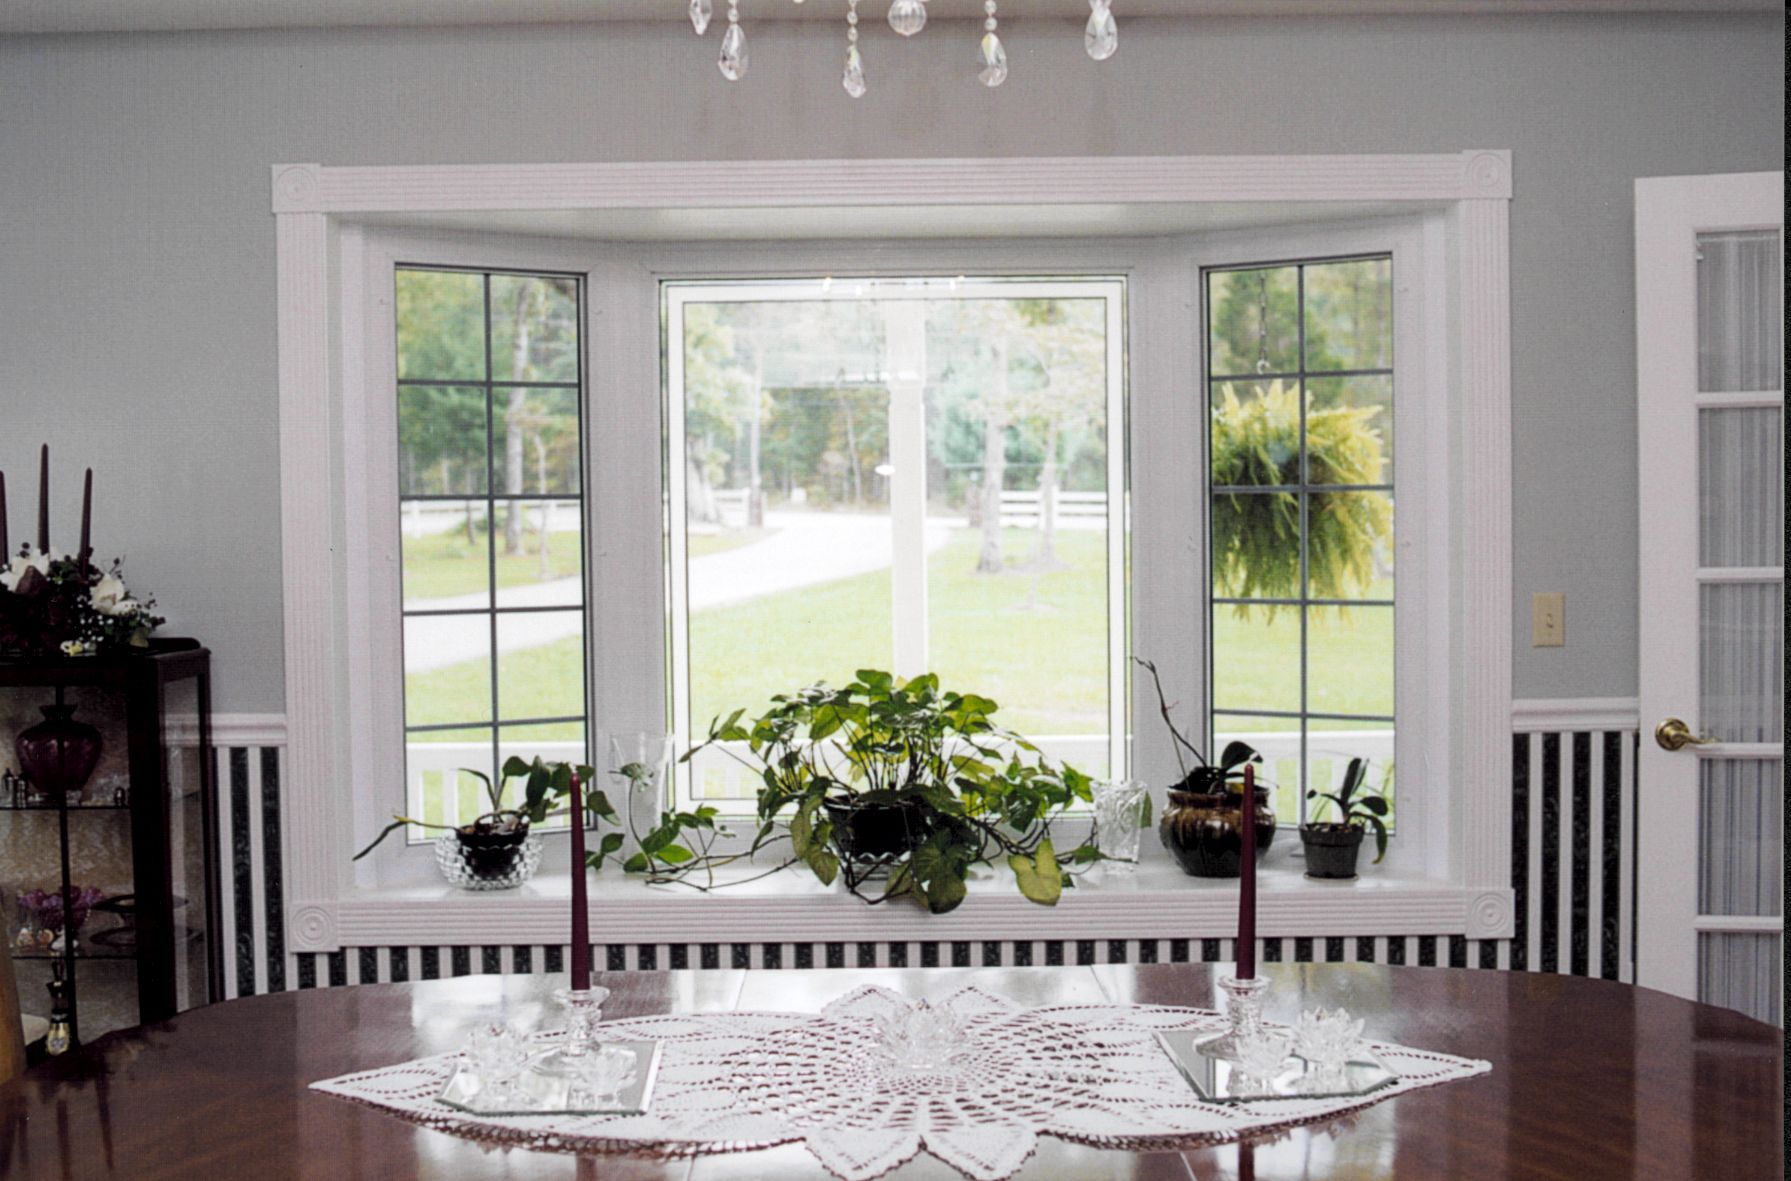 Bay Window Design Creativity | Window, Bay windows and Window design